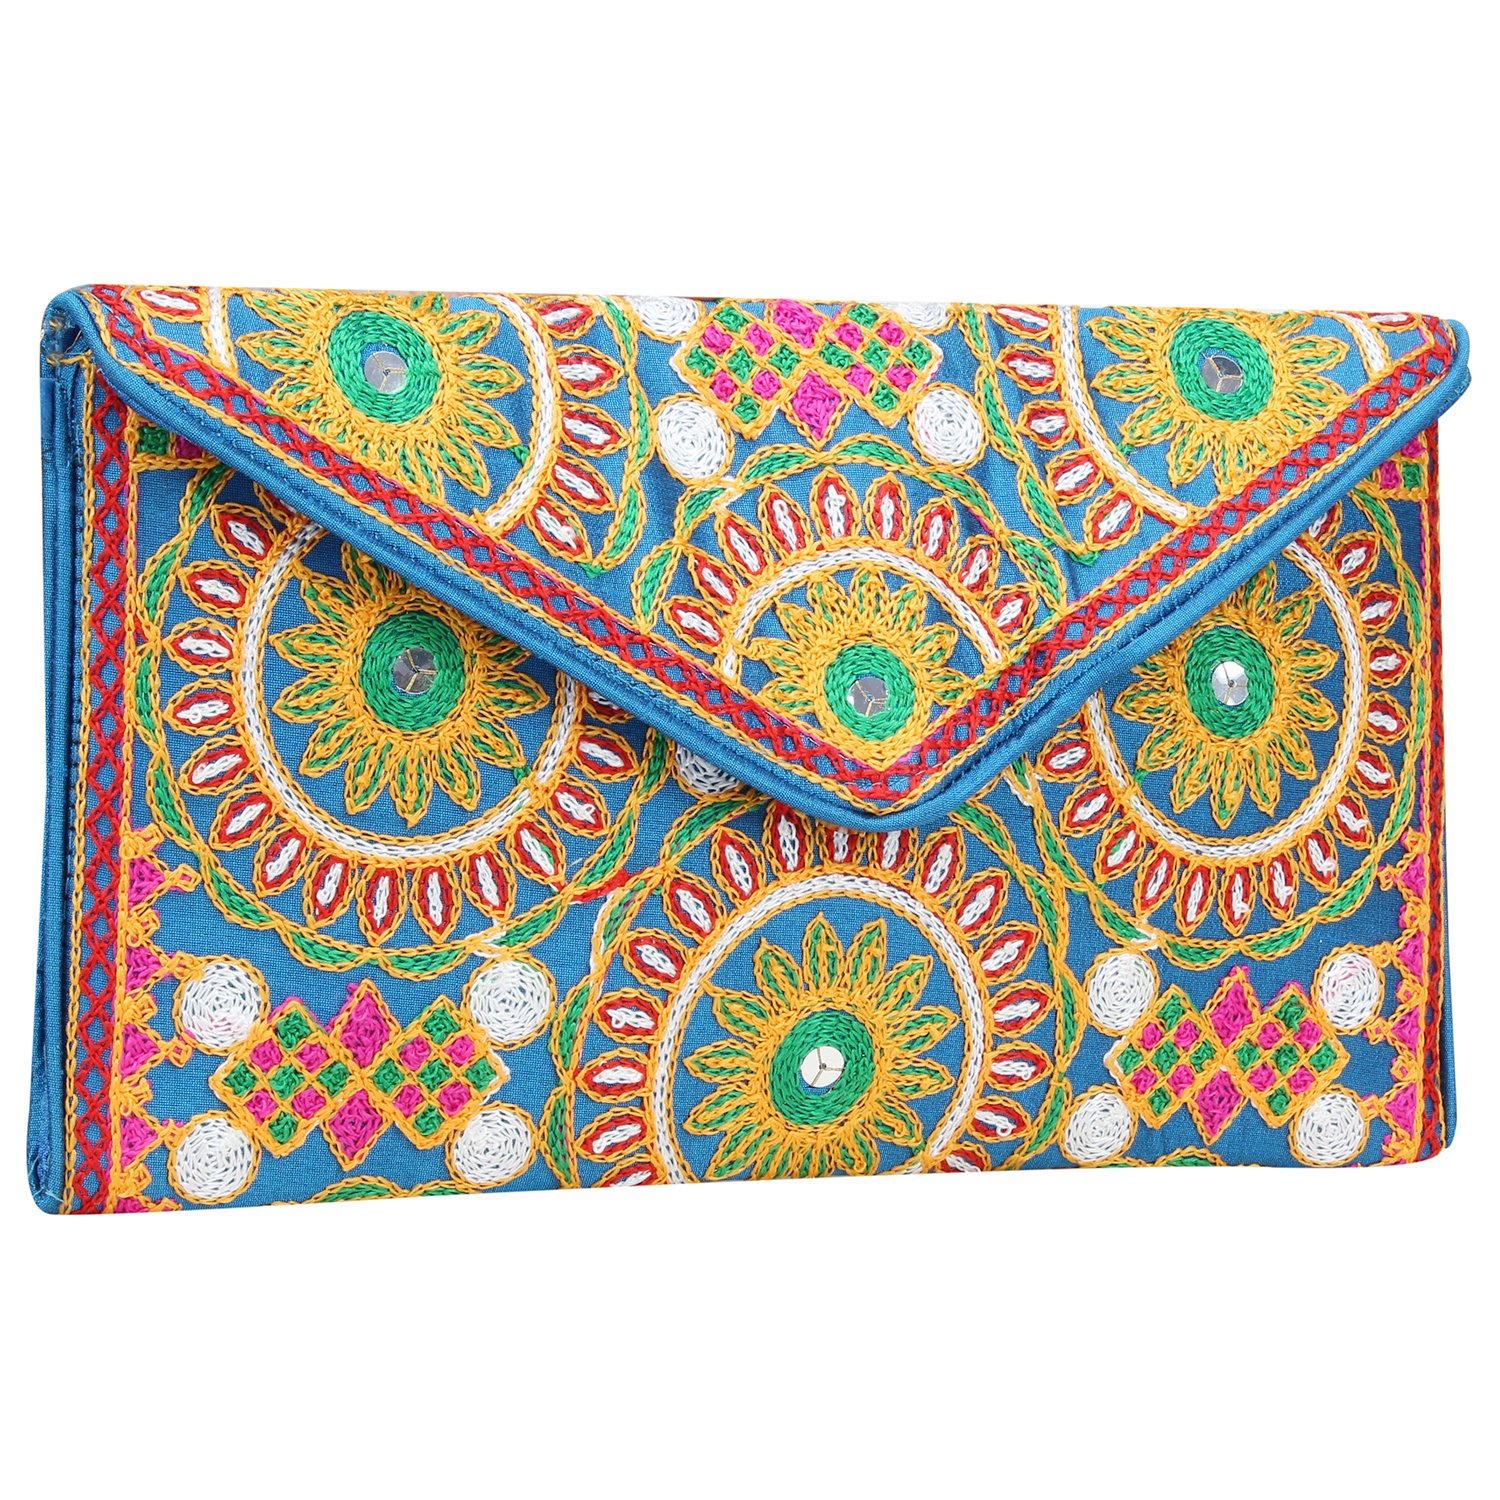 Ethnic Embroidered Hadmade Banjara foldover Clutch Purse-Sling Bag-Cross Body Bag (Dark Sky Blue)